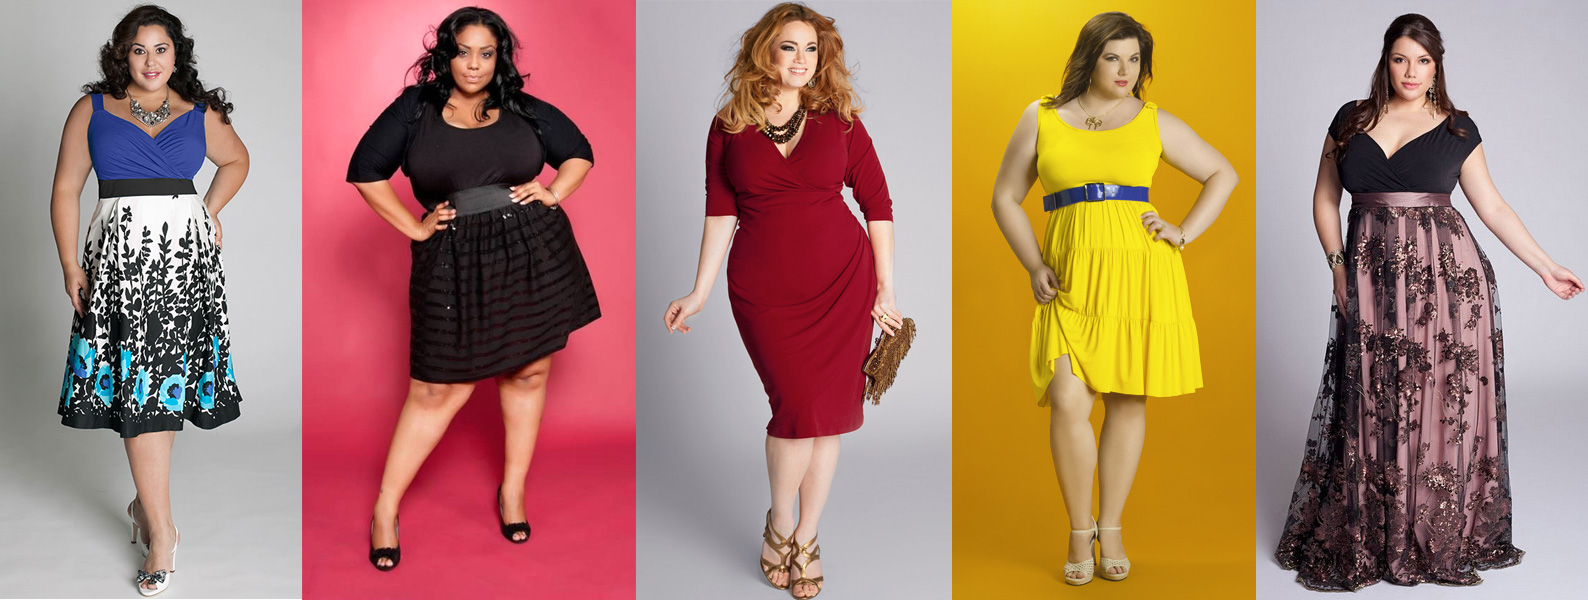 China and US stores specialize in Plus Size clothes